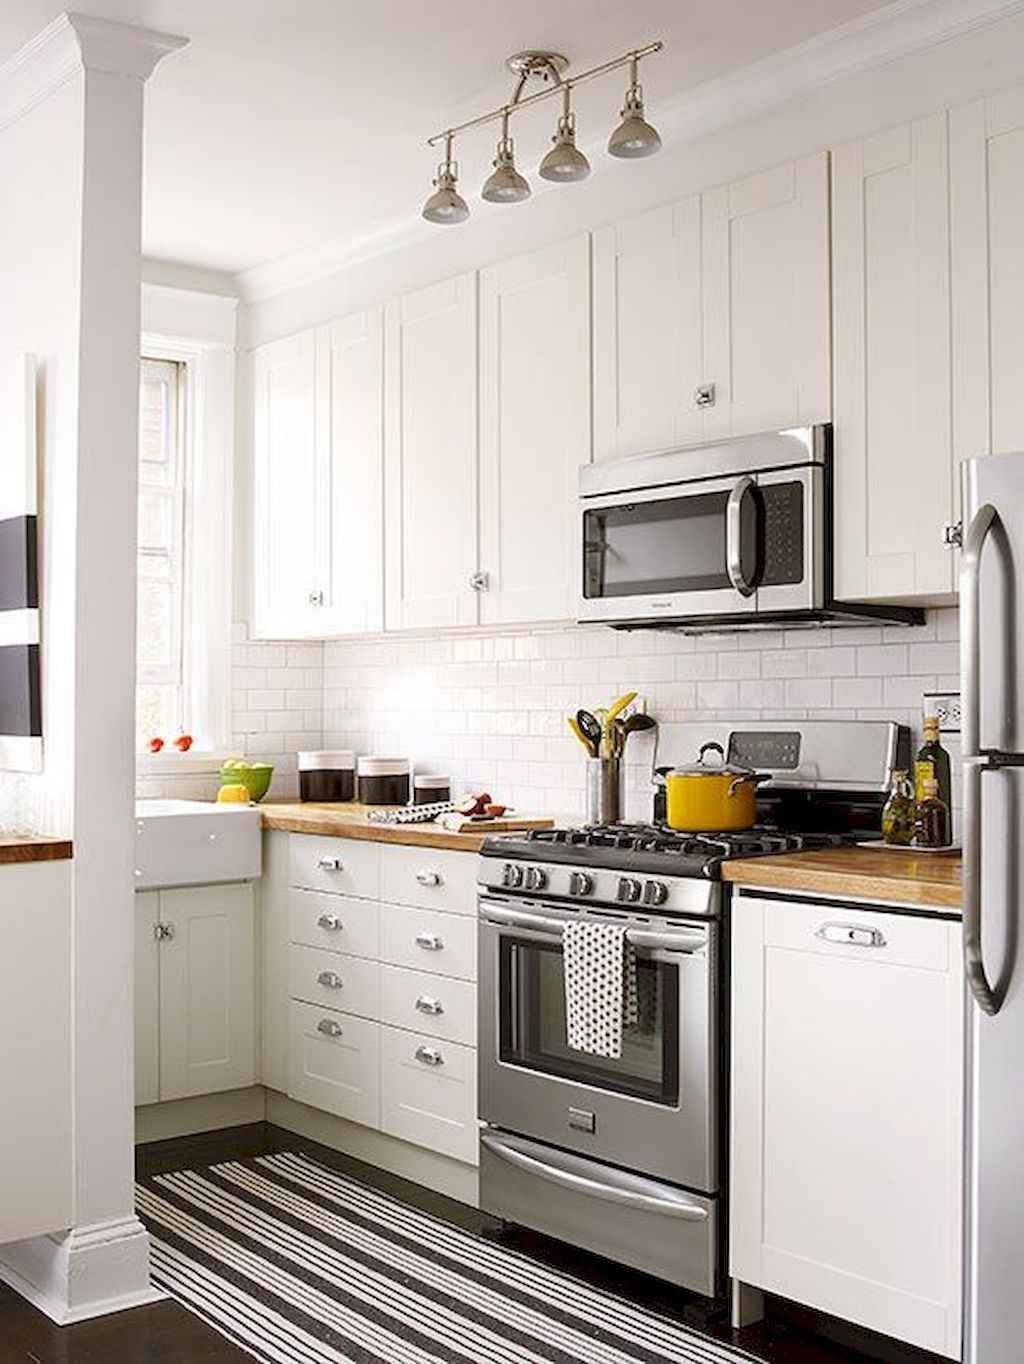 29 small apartment decorating ideas on a budget contemporary kitchen interior kitchen design on kitchen ideas on a budget id=74296